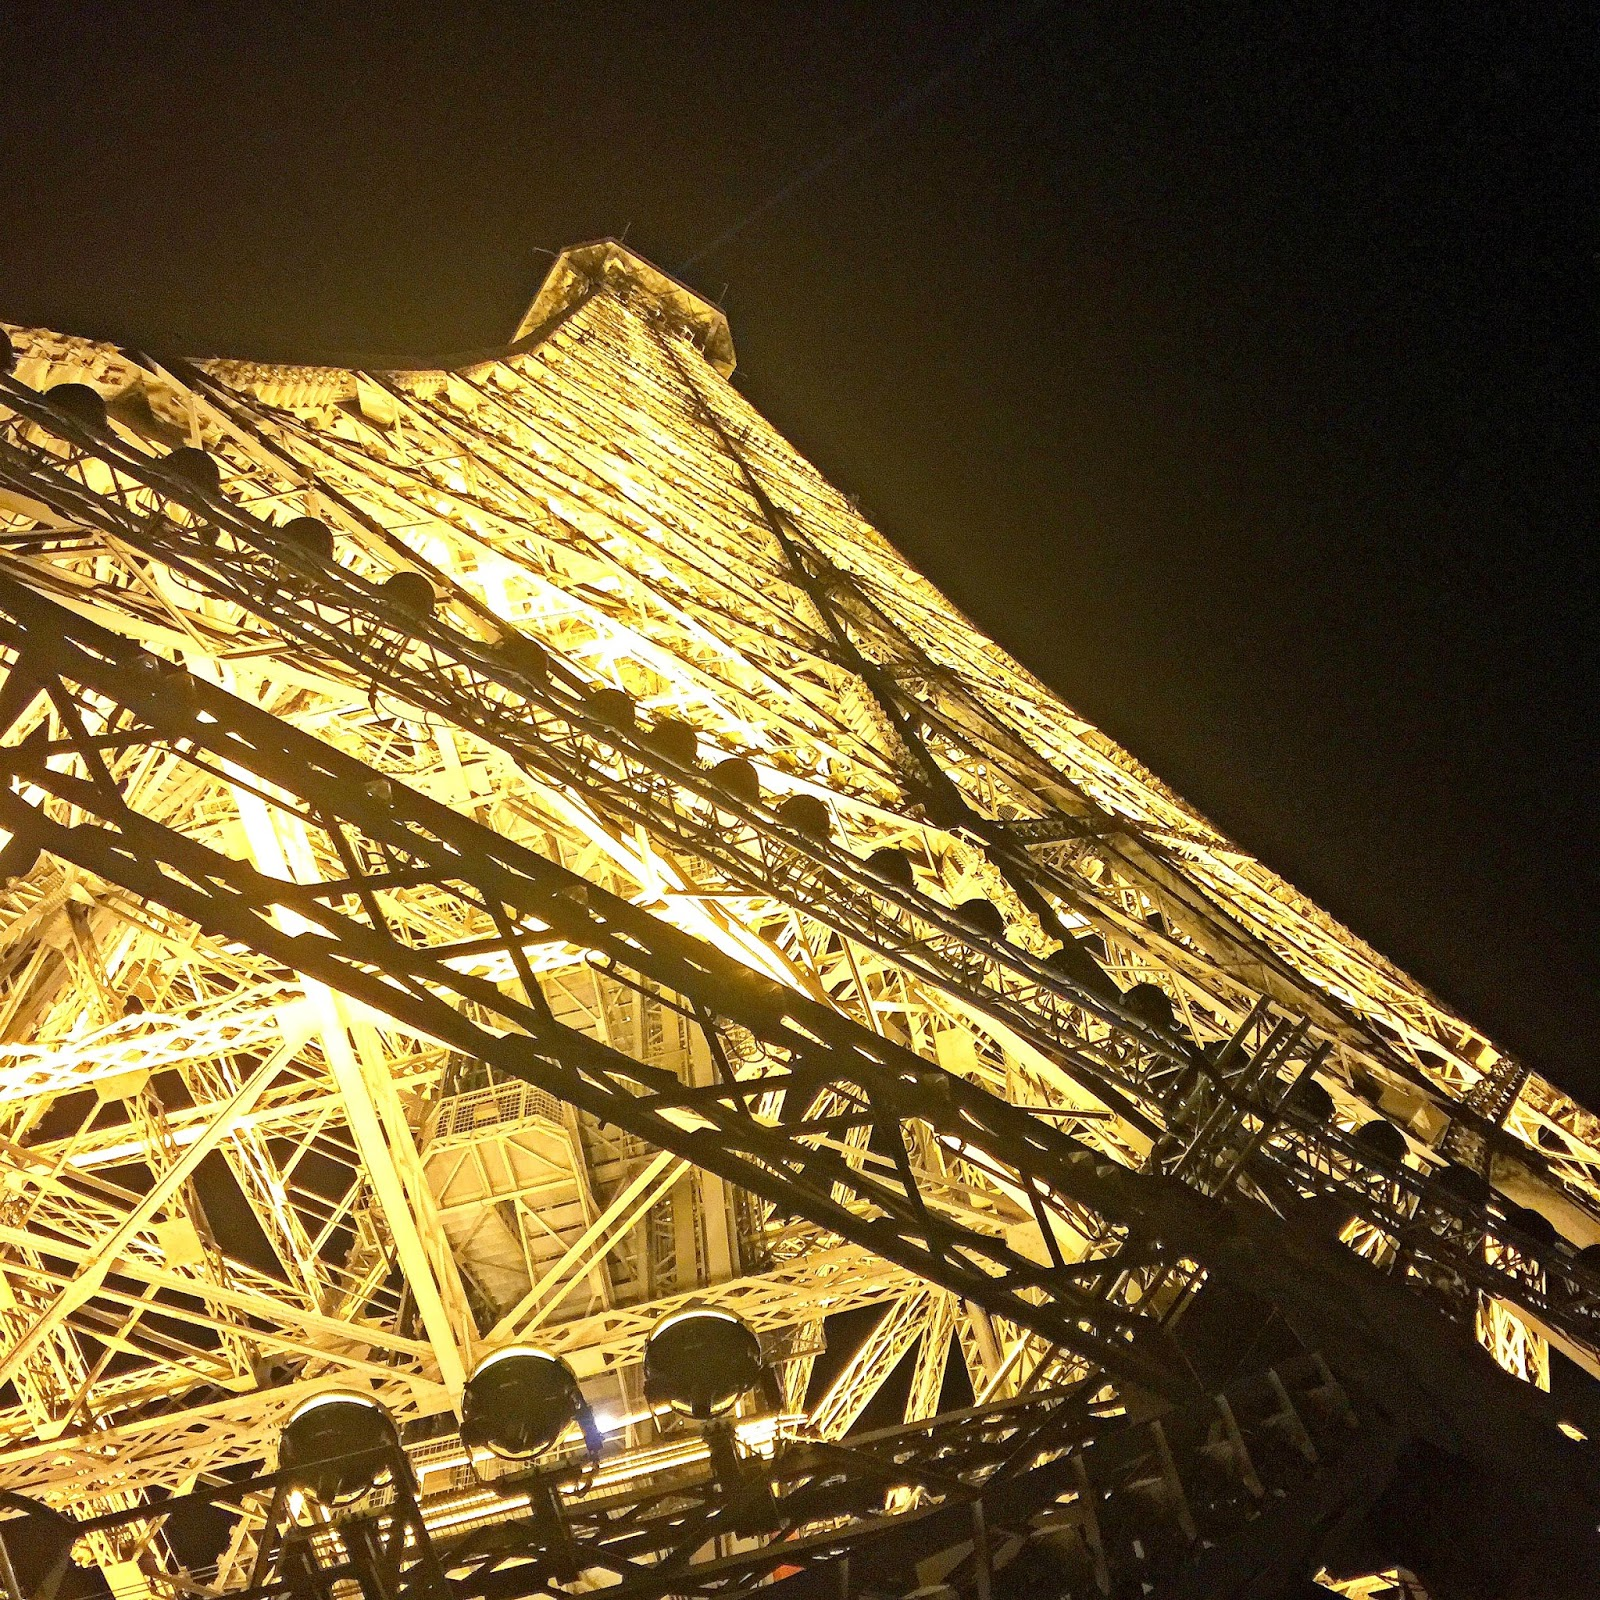 eiffel tower from below at night